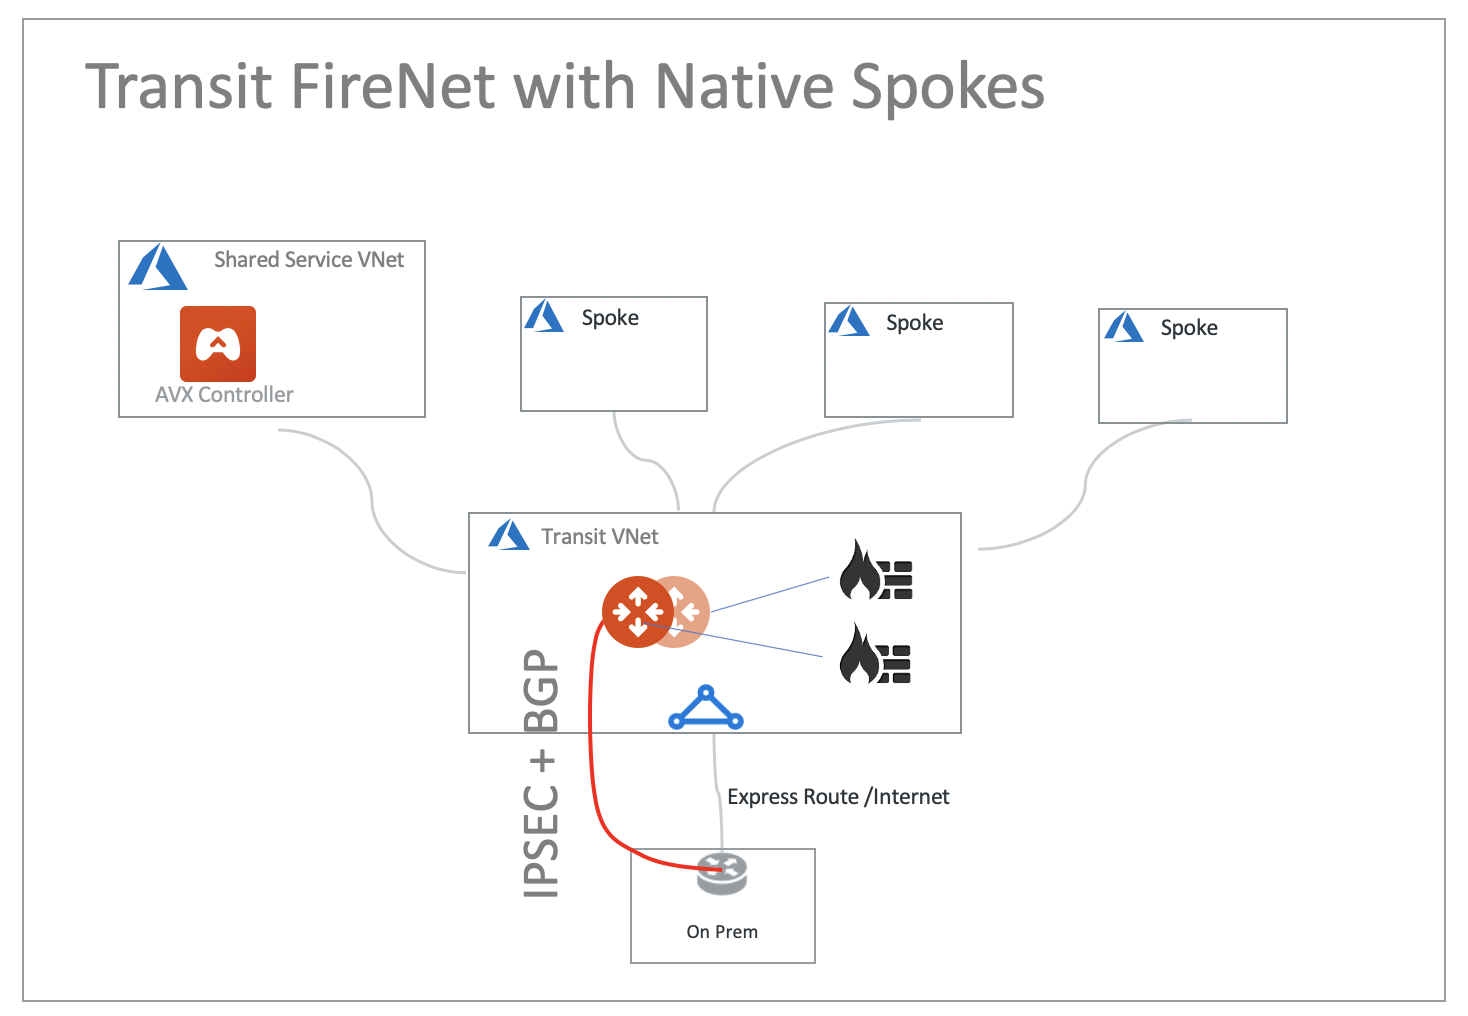 transit_firenet_native_spokes